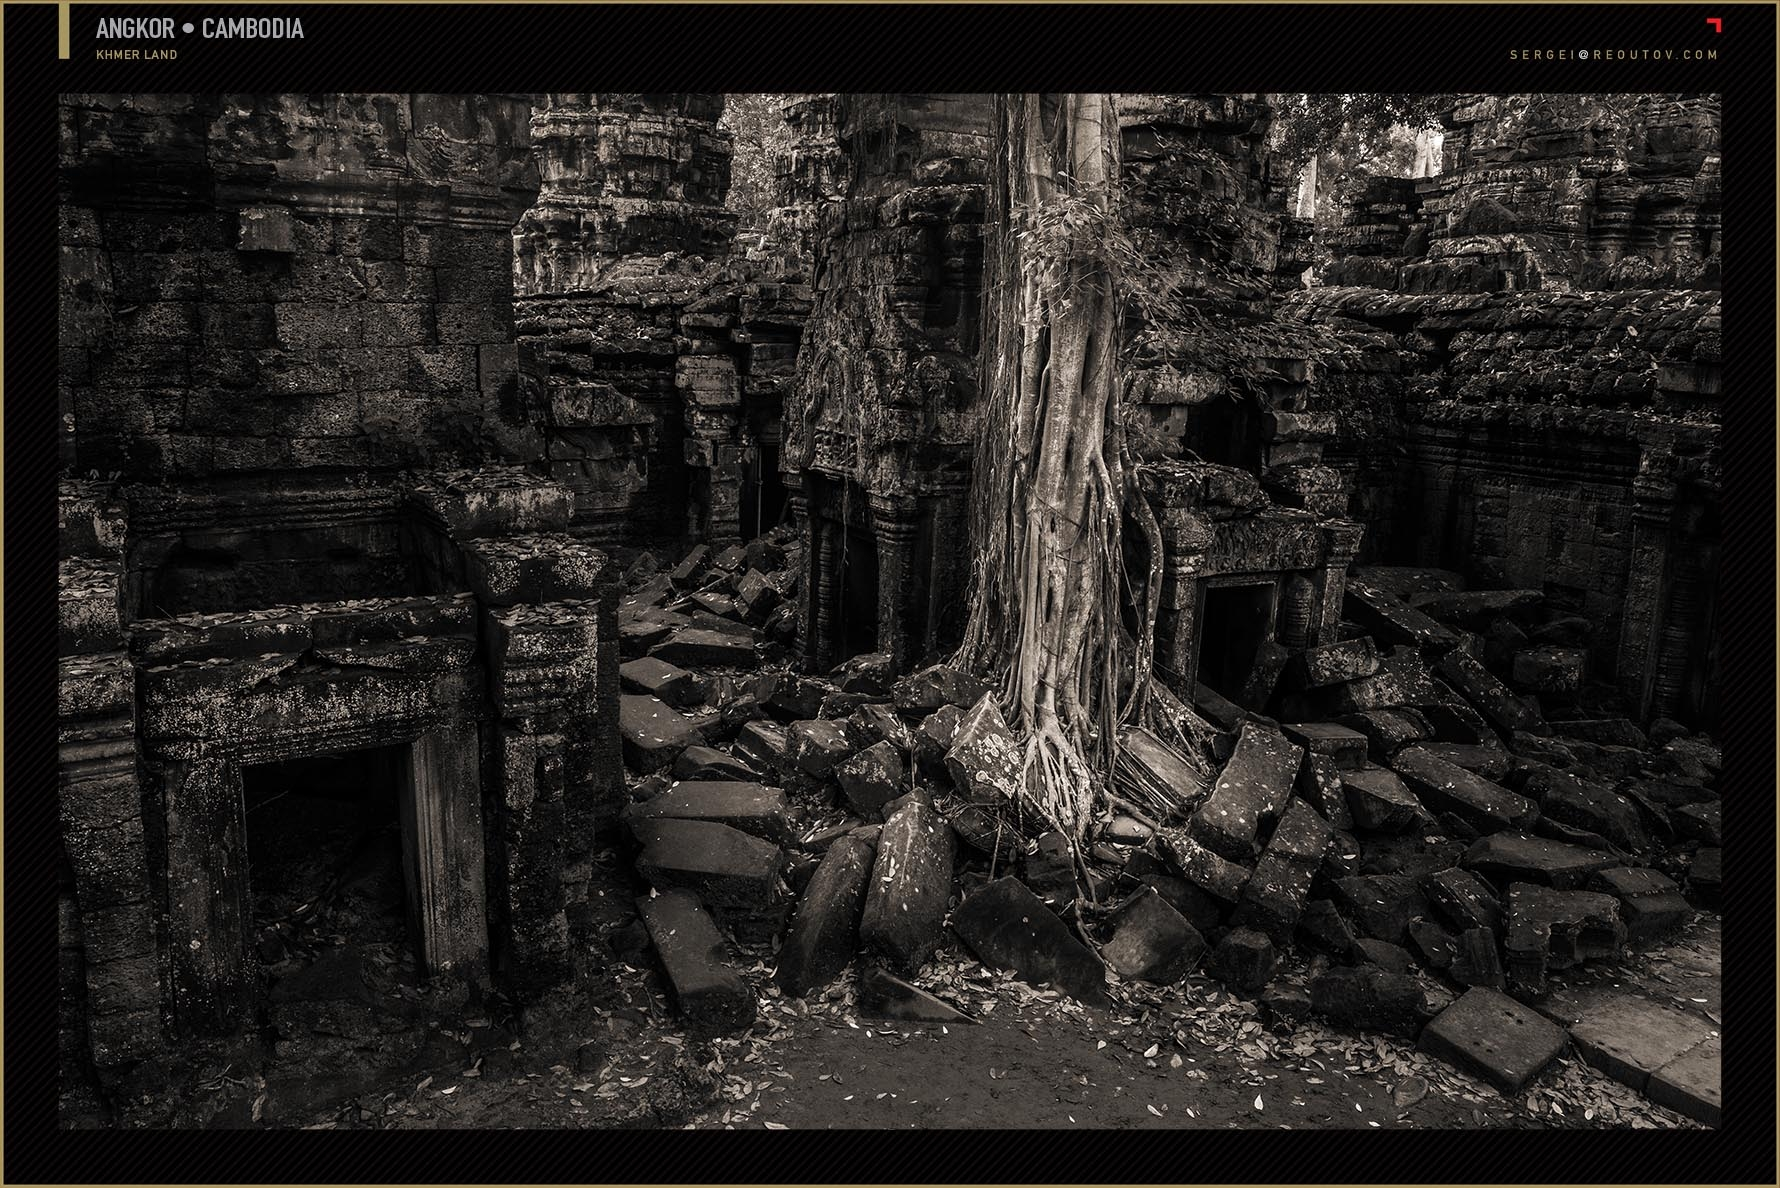 Ta Prohm Temple at Angkor, Siem Reap, Cambodia